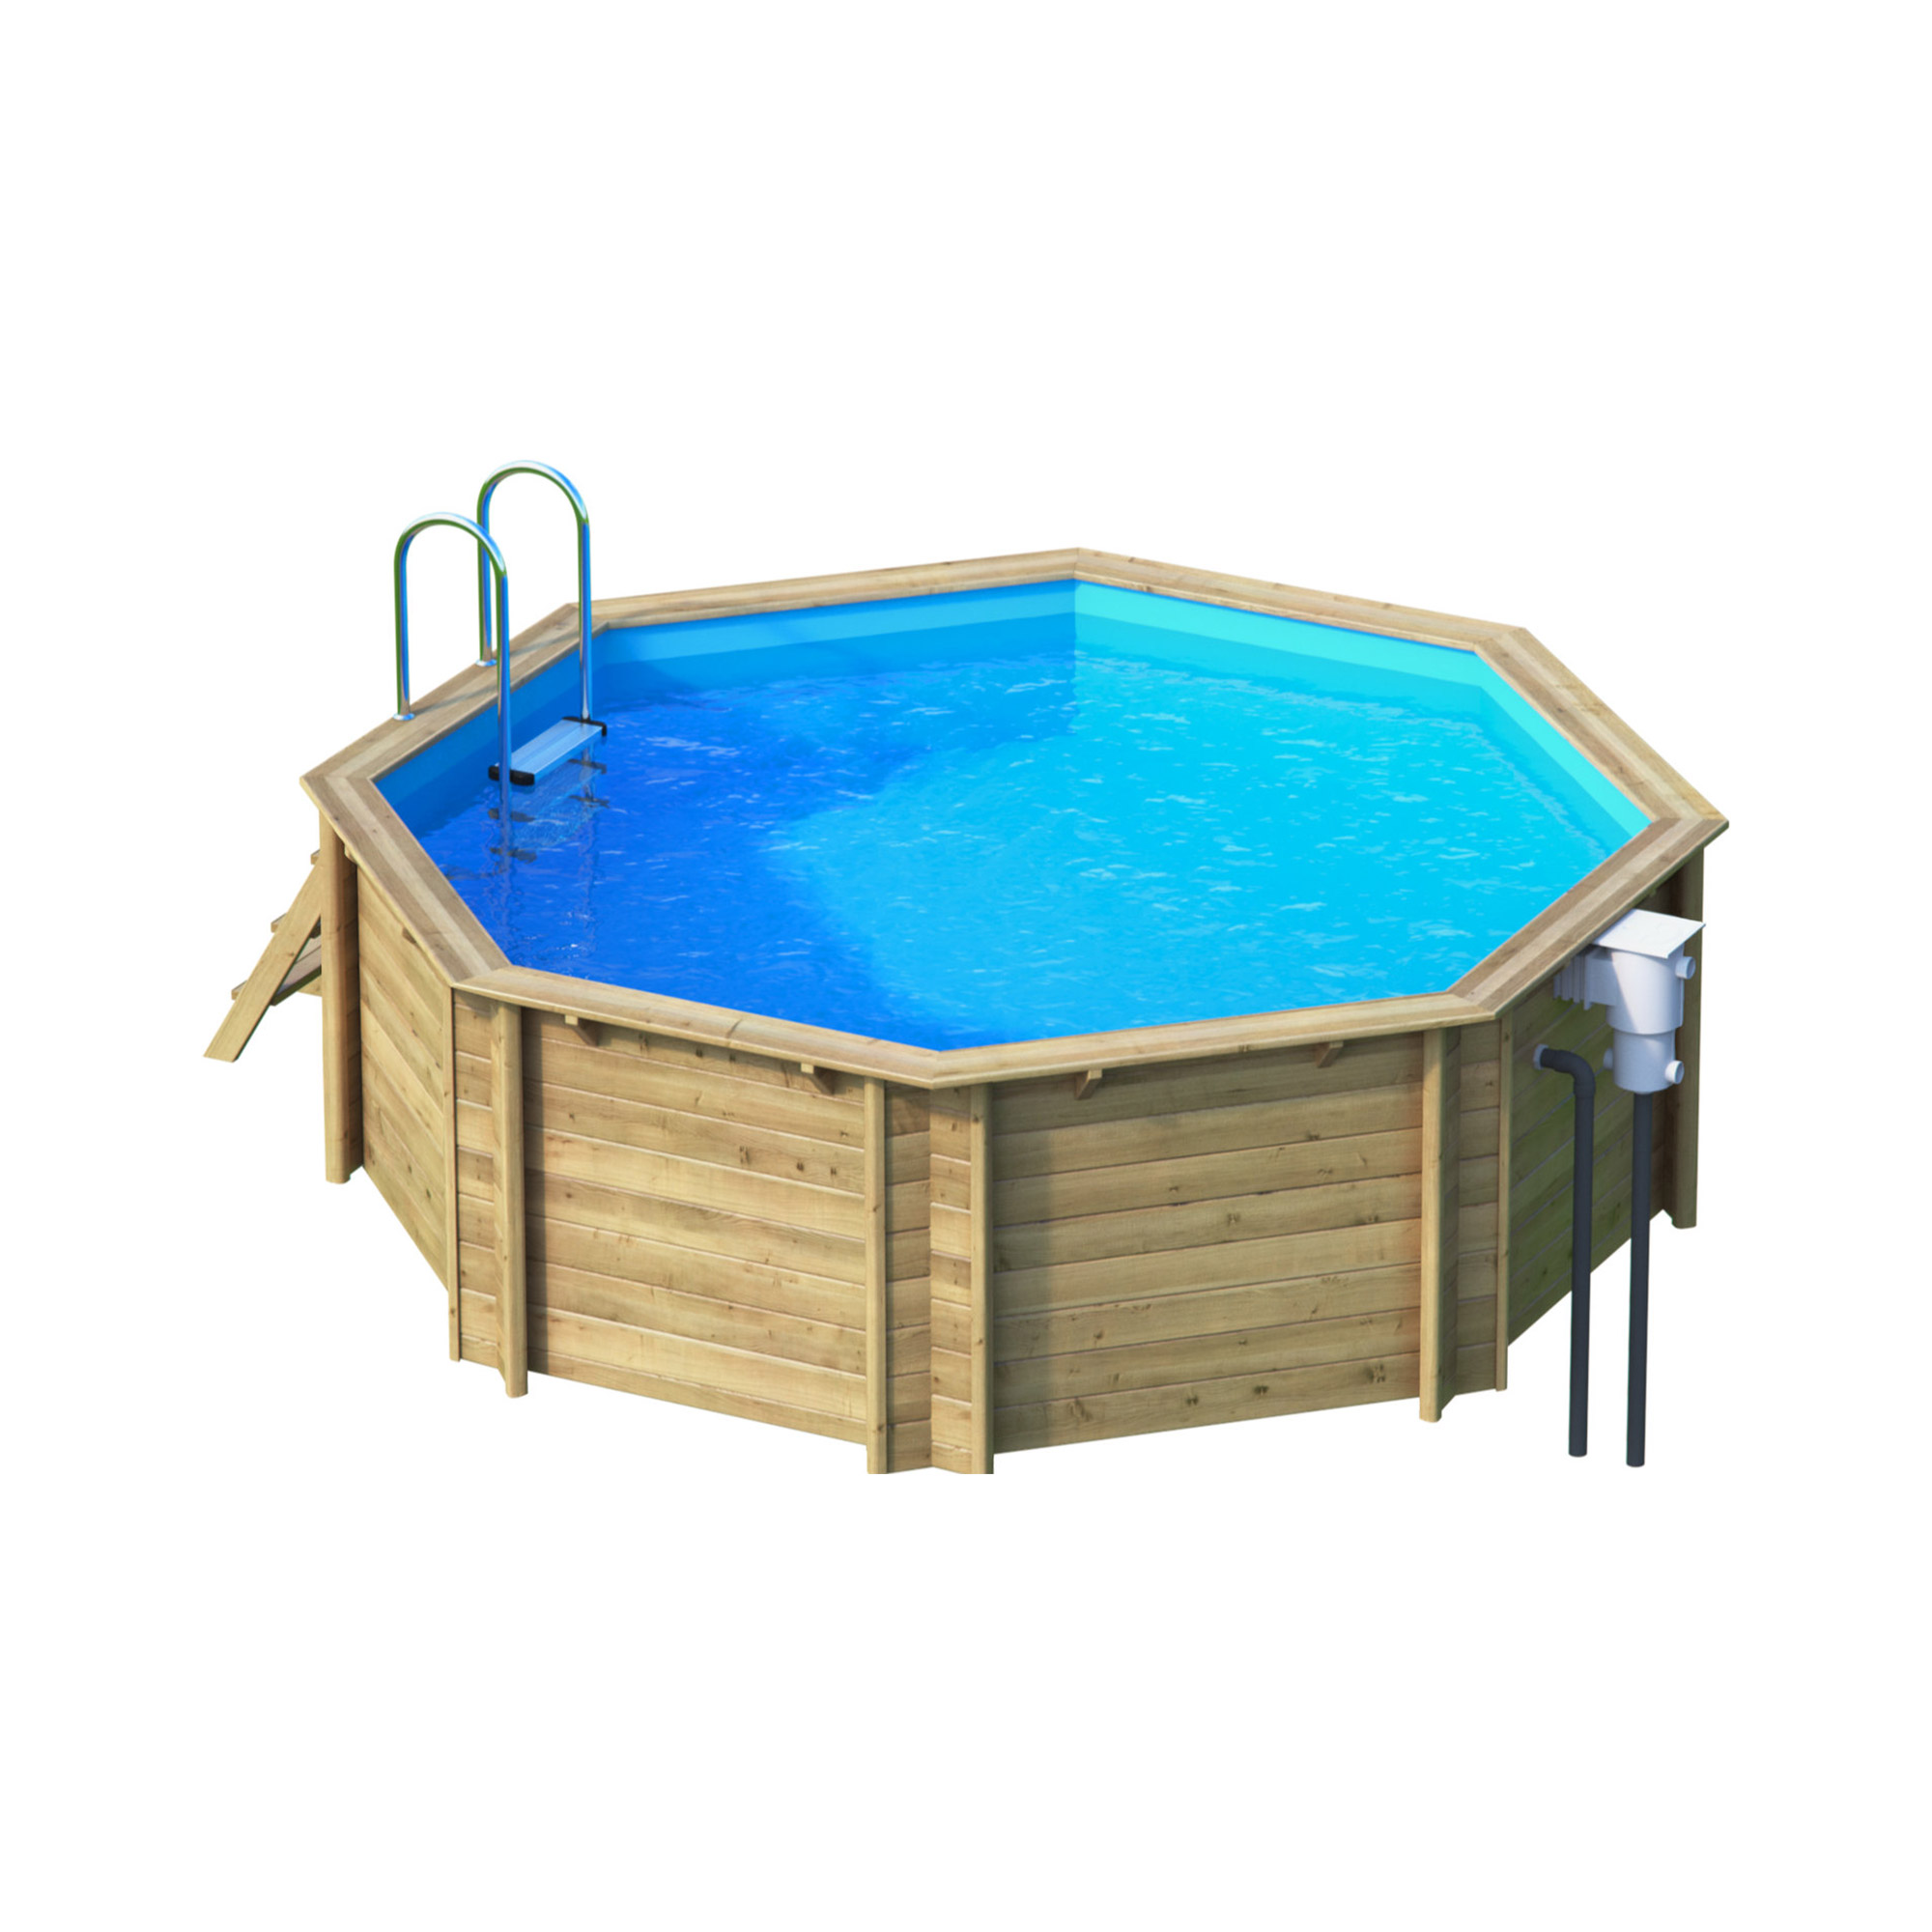 Piscine bois octogonale hors sol semi enterr e for Piscine bois octogonale semi enterree